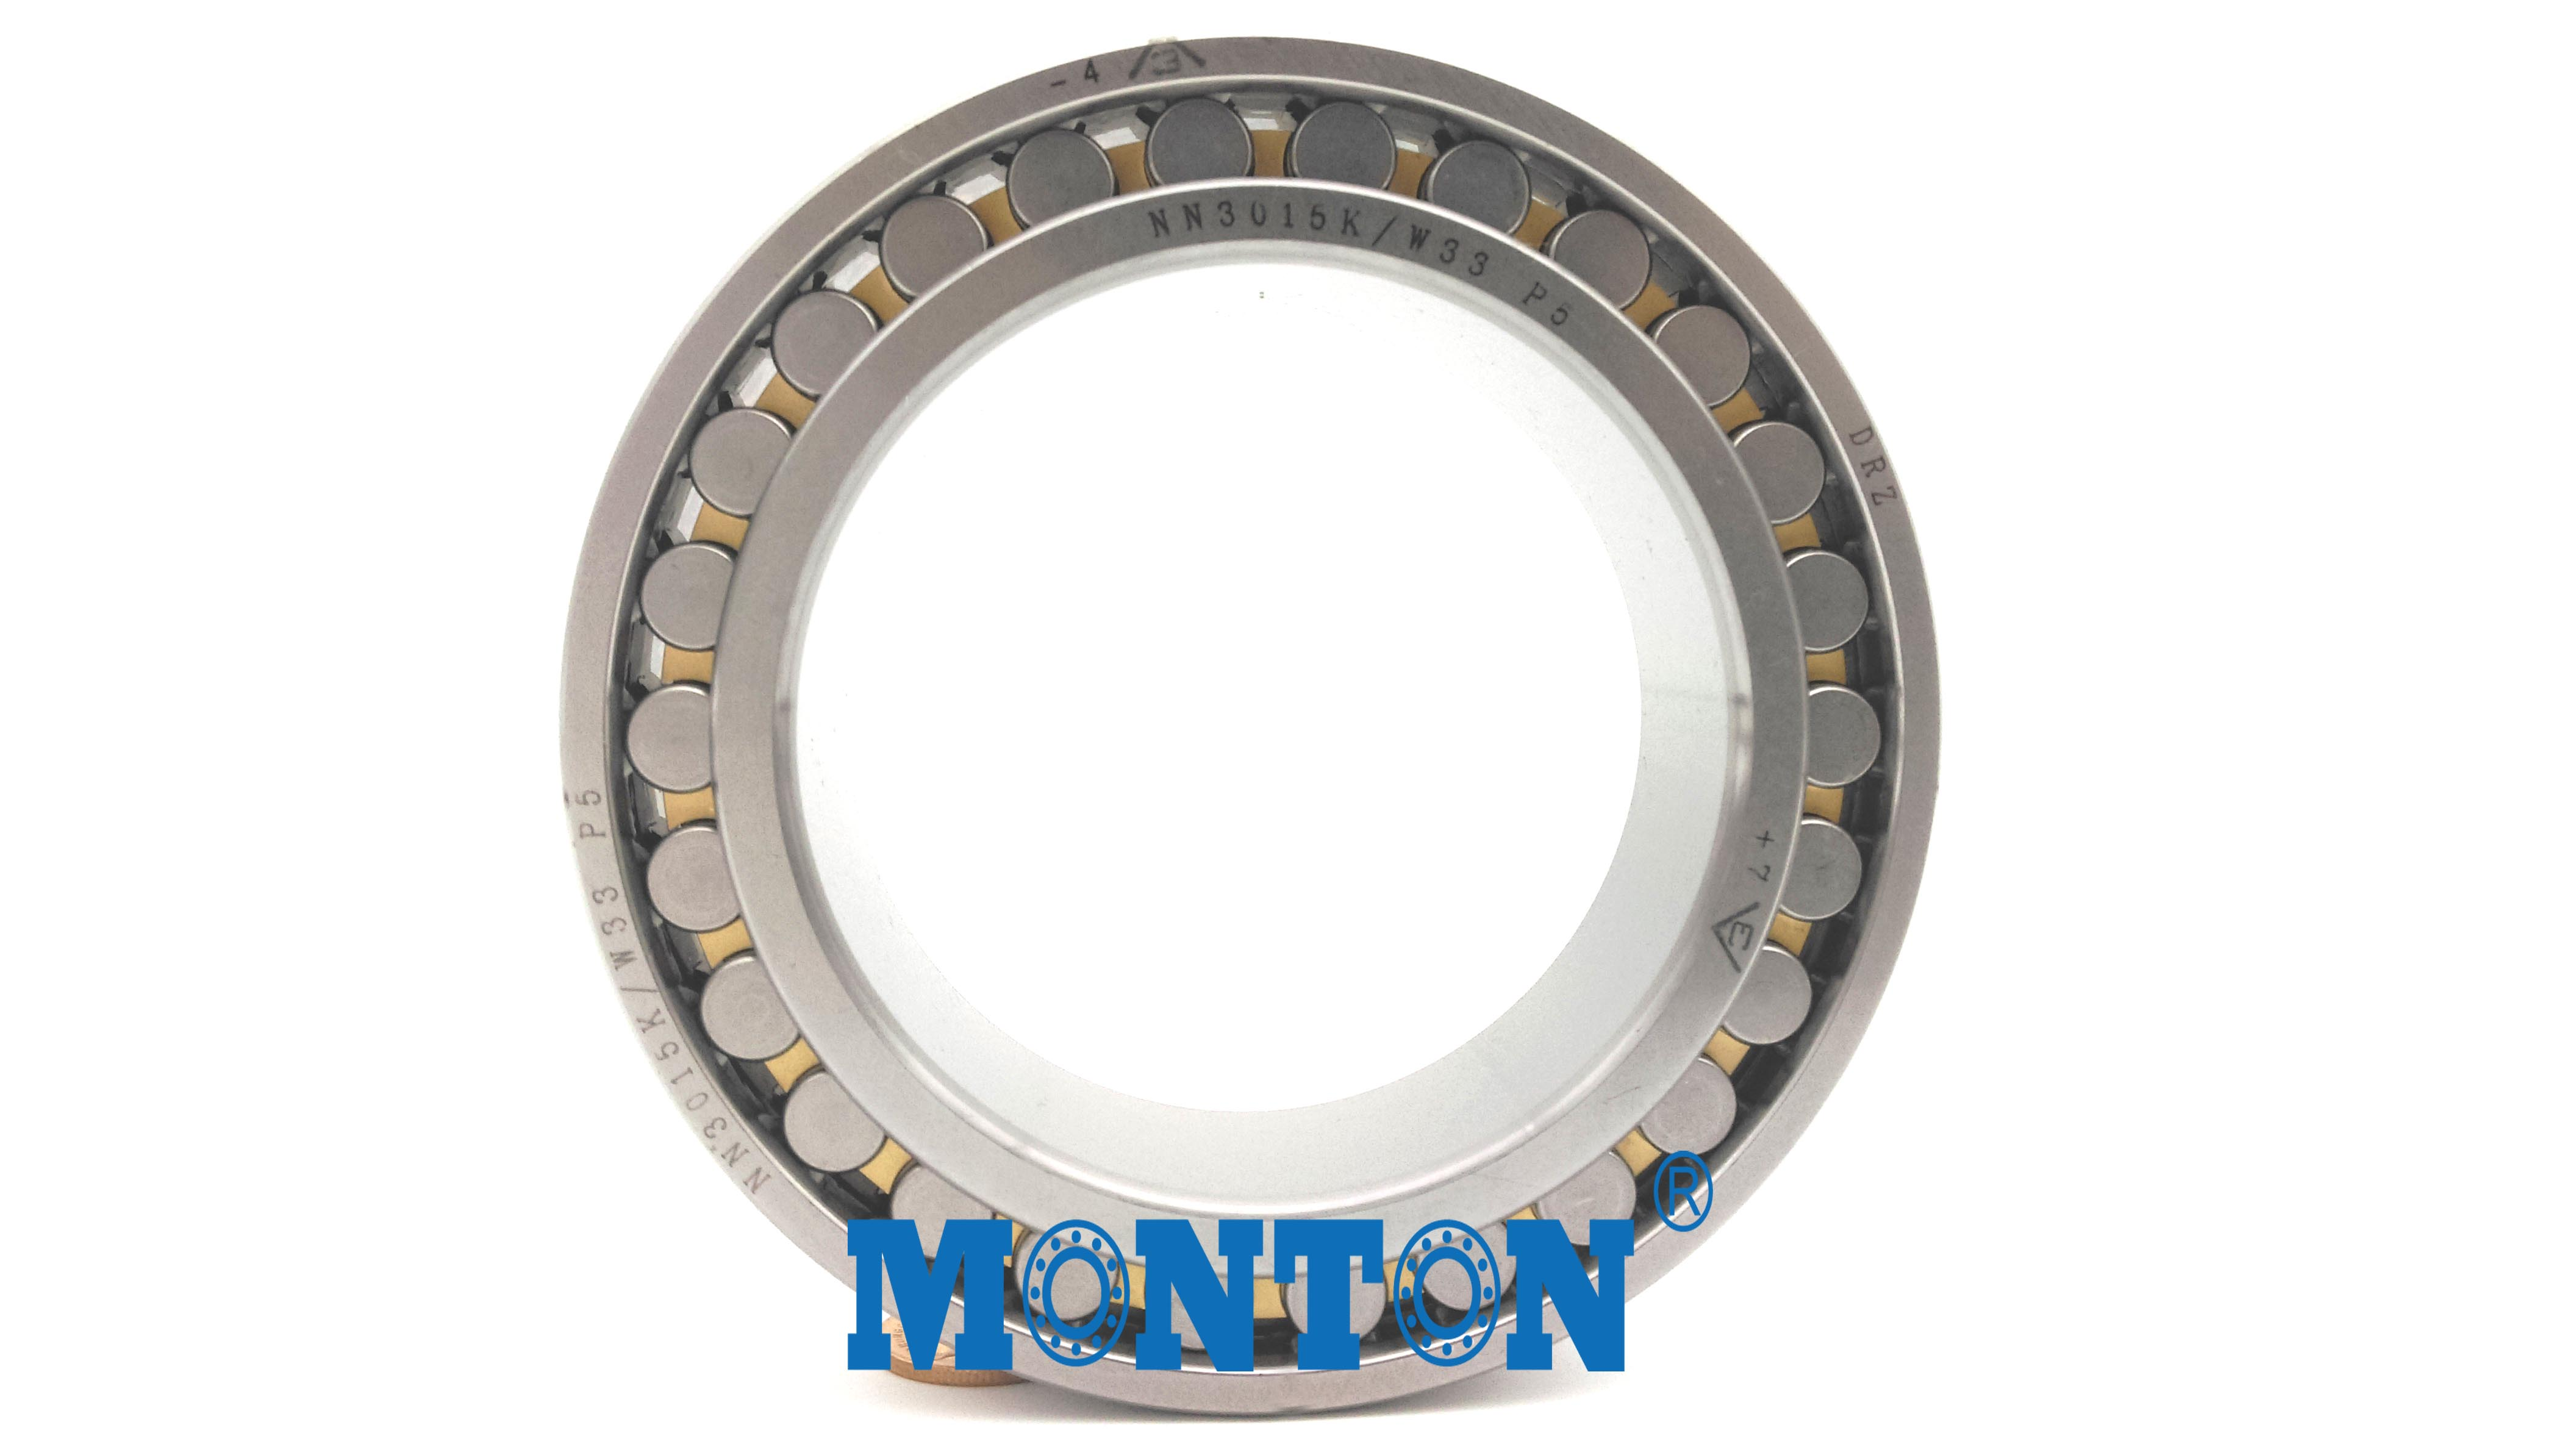 NN3015KW33/P5  Cylindrical Roller Bearings Machine Tool Spindle Bearings